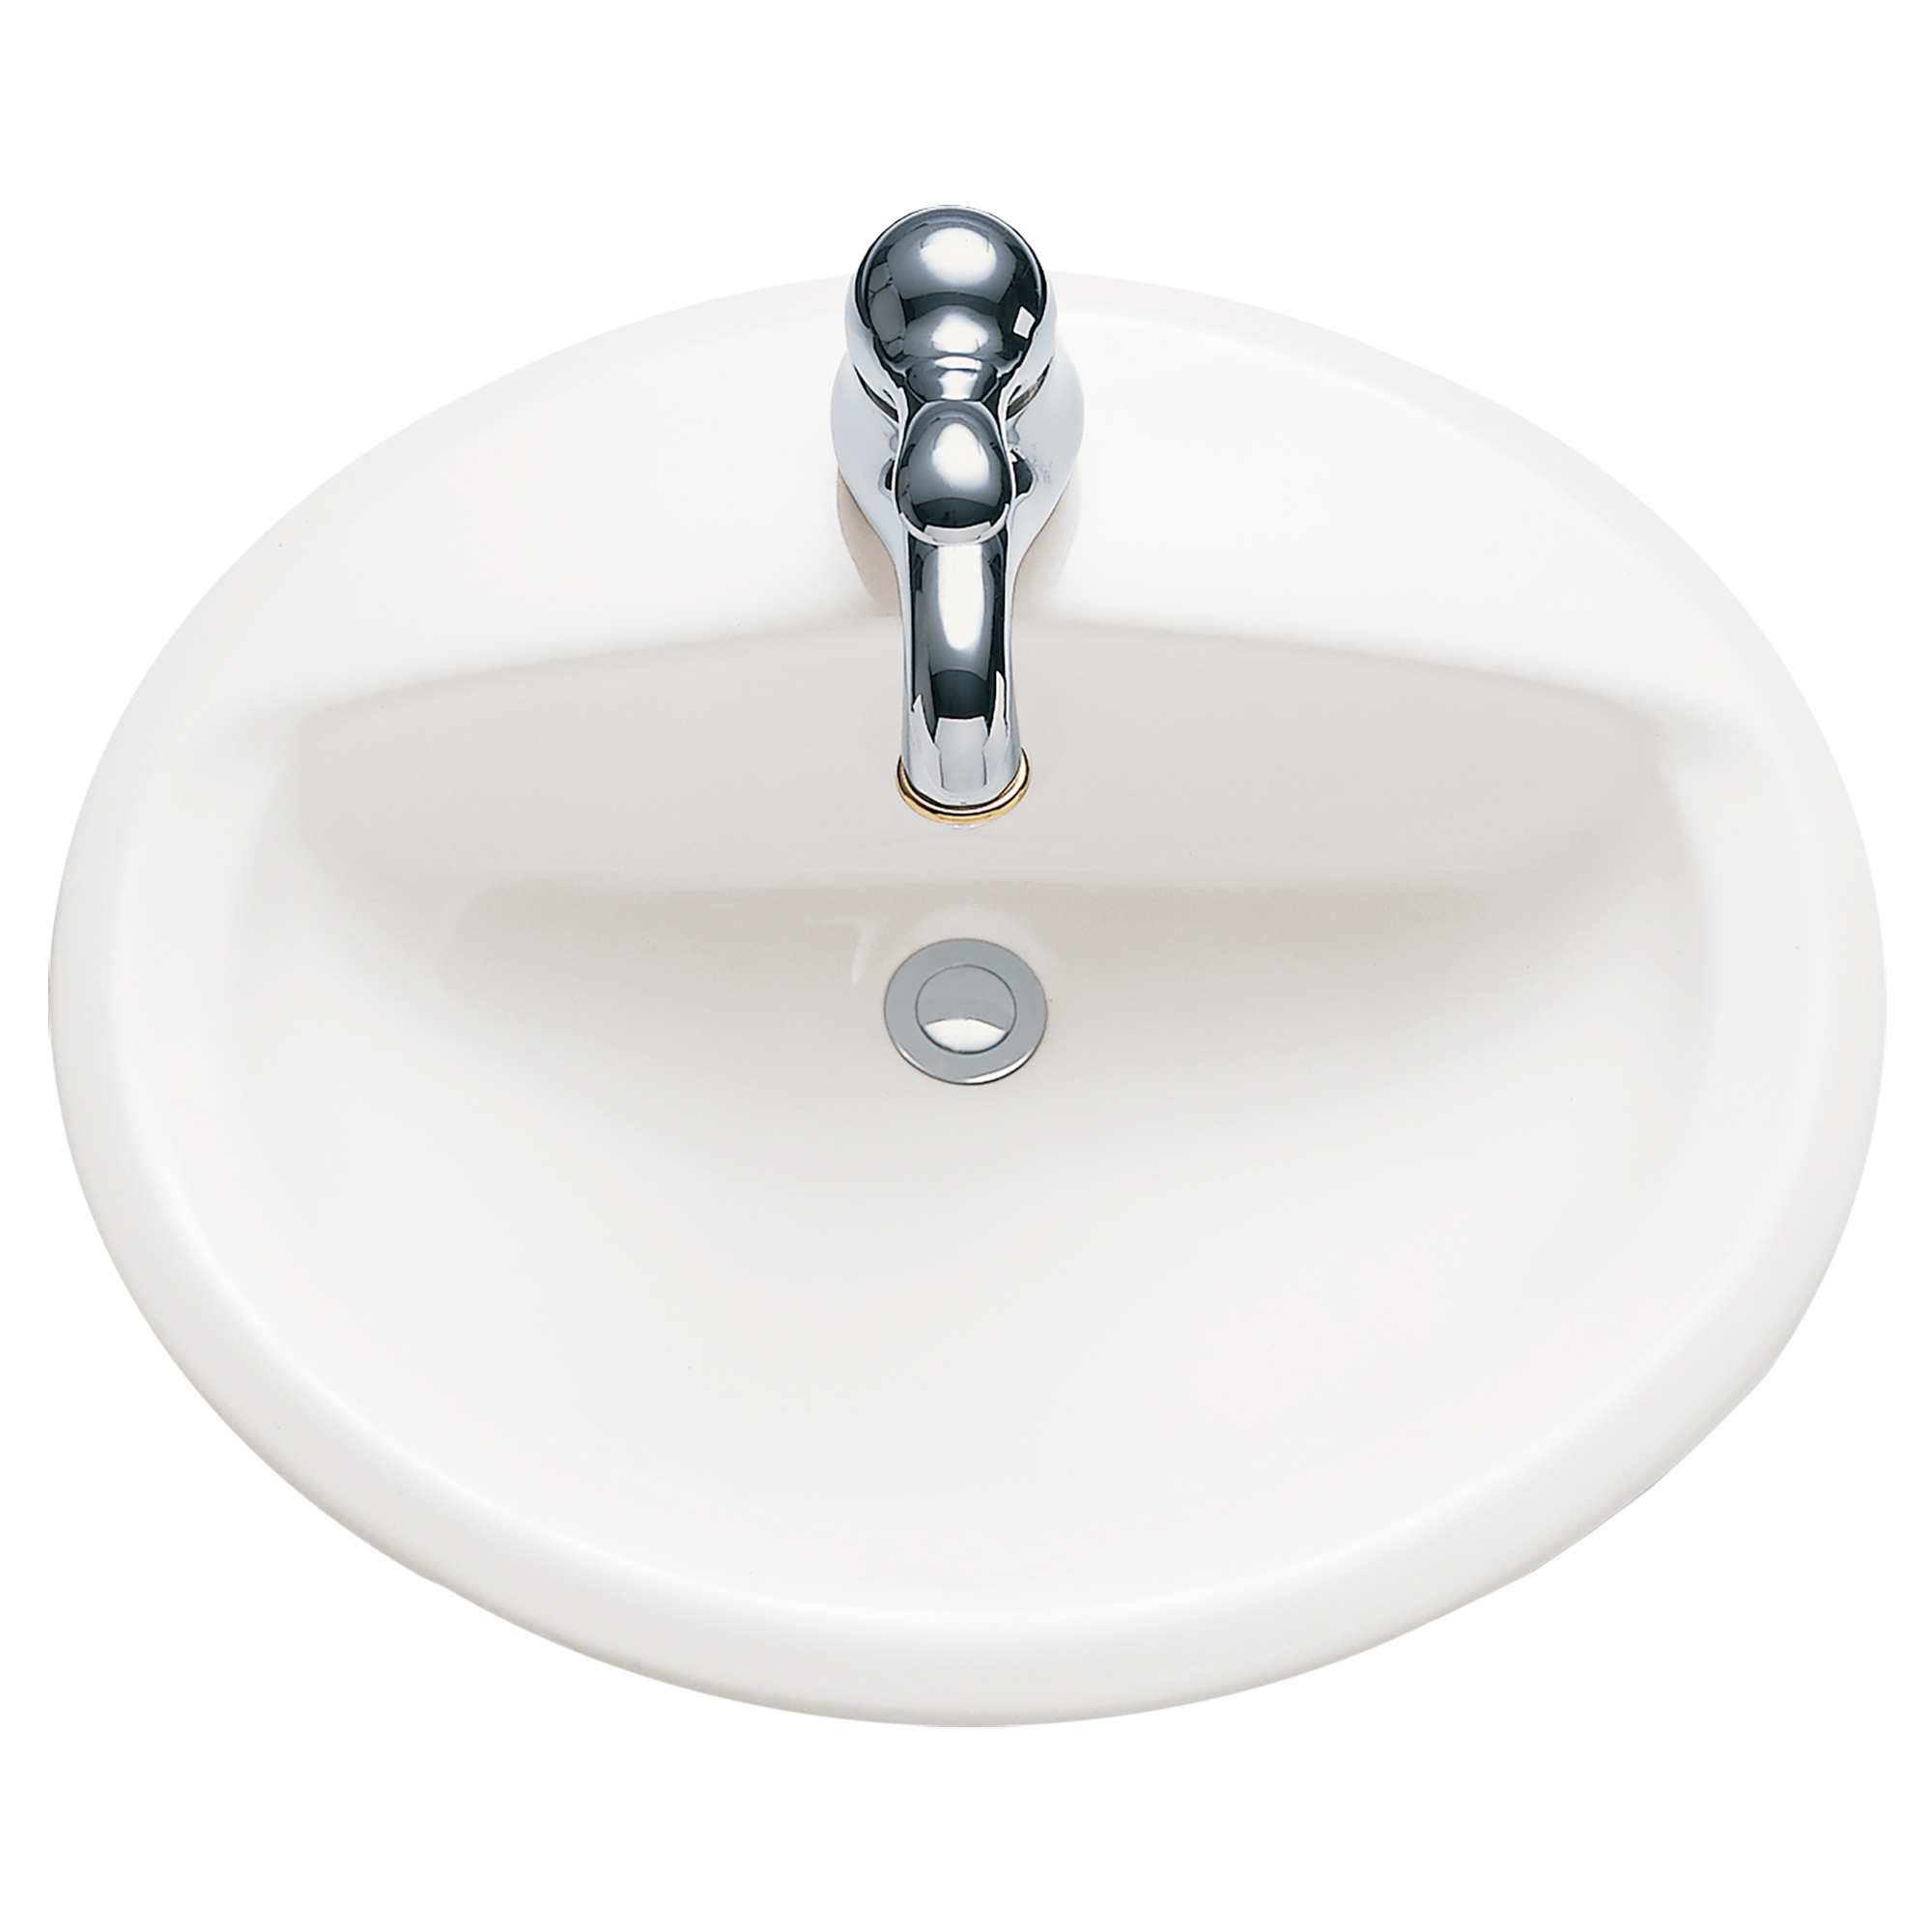 American Standard 0475.047.020 Aqualyn® Self-Rimming Bathroom Sink With Front Overflow, Oval, 20-3/8 in W x 17-3/8 in D x 7 in H, Countertop/Drop-In Mount, Vitreous China, White, Import